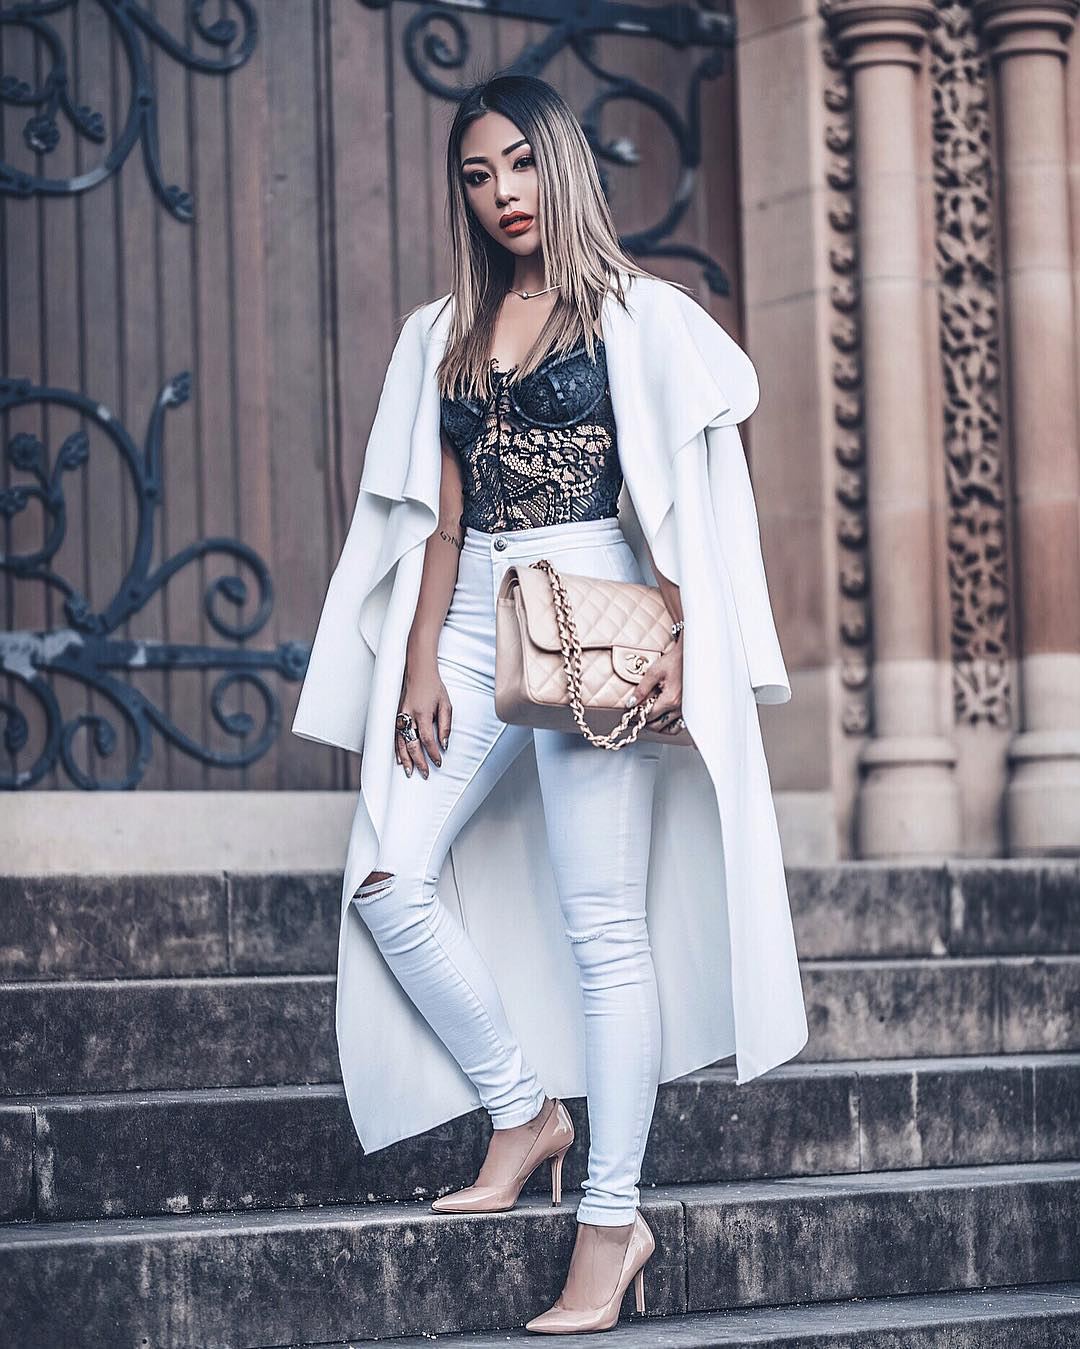 White Draped Long Coat Over Black Lace Bodysuit With White Skinny Jeans 2019